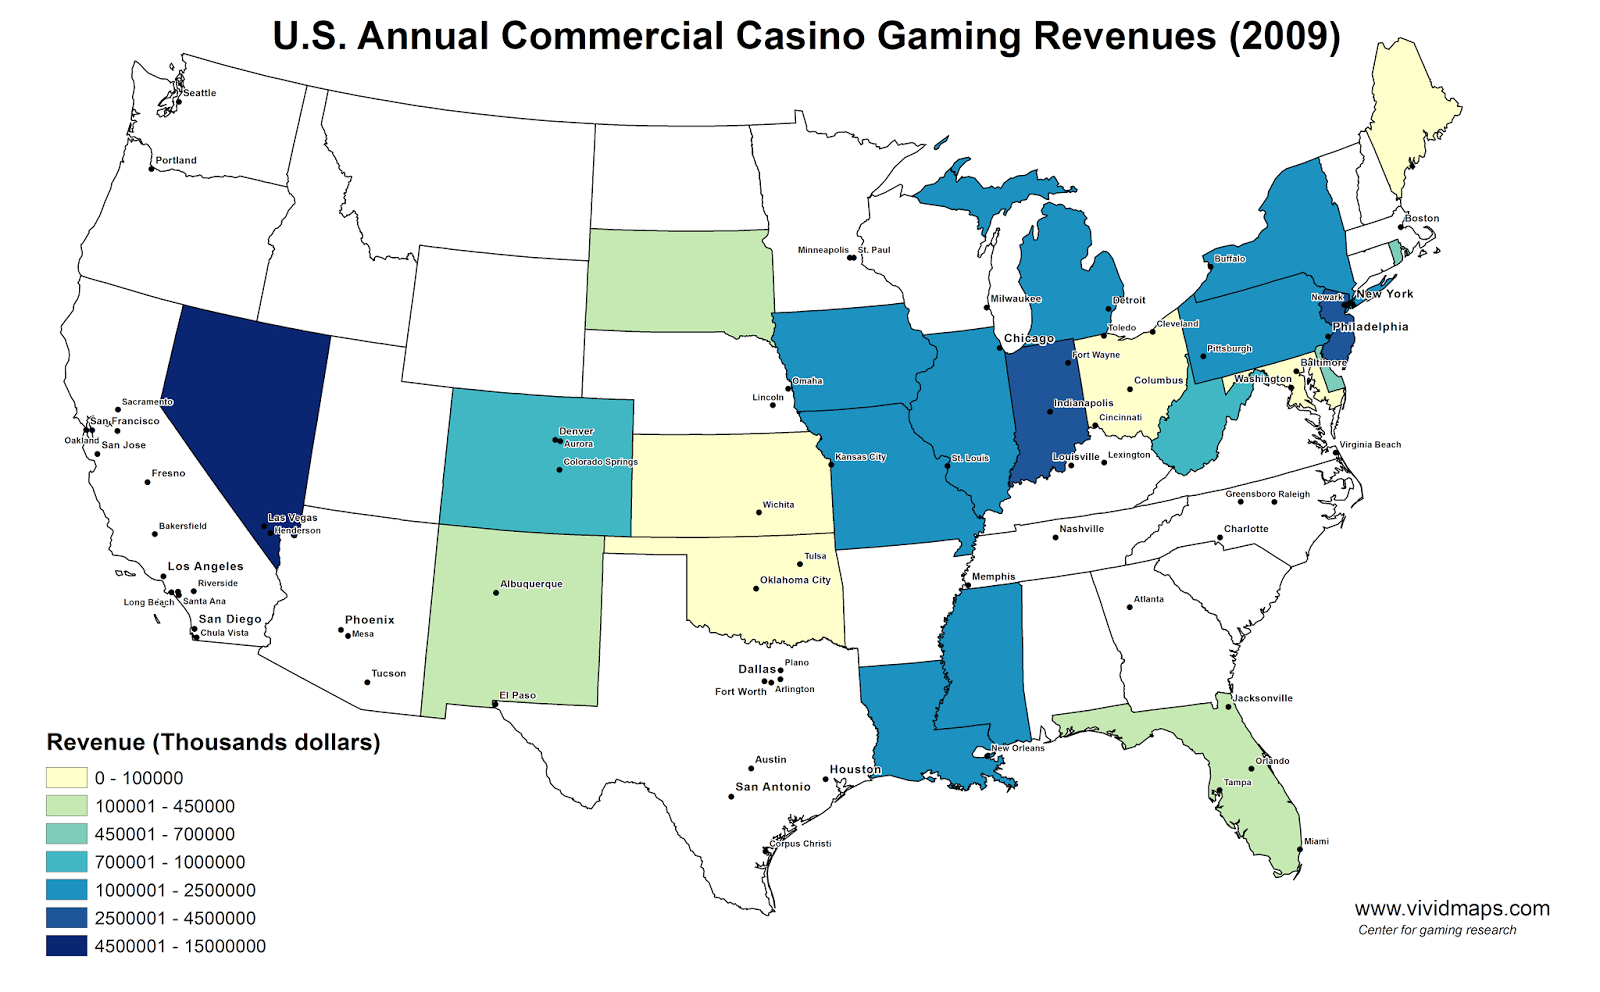 U.S. Annual Commercial Casino Gaming Revenues (2009)